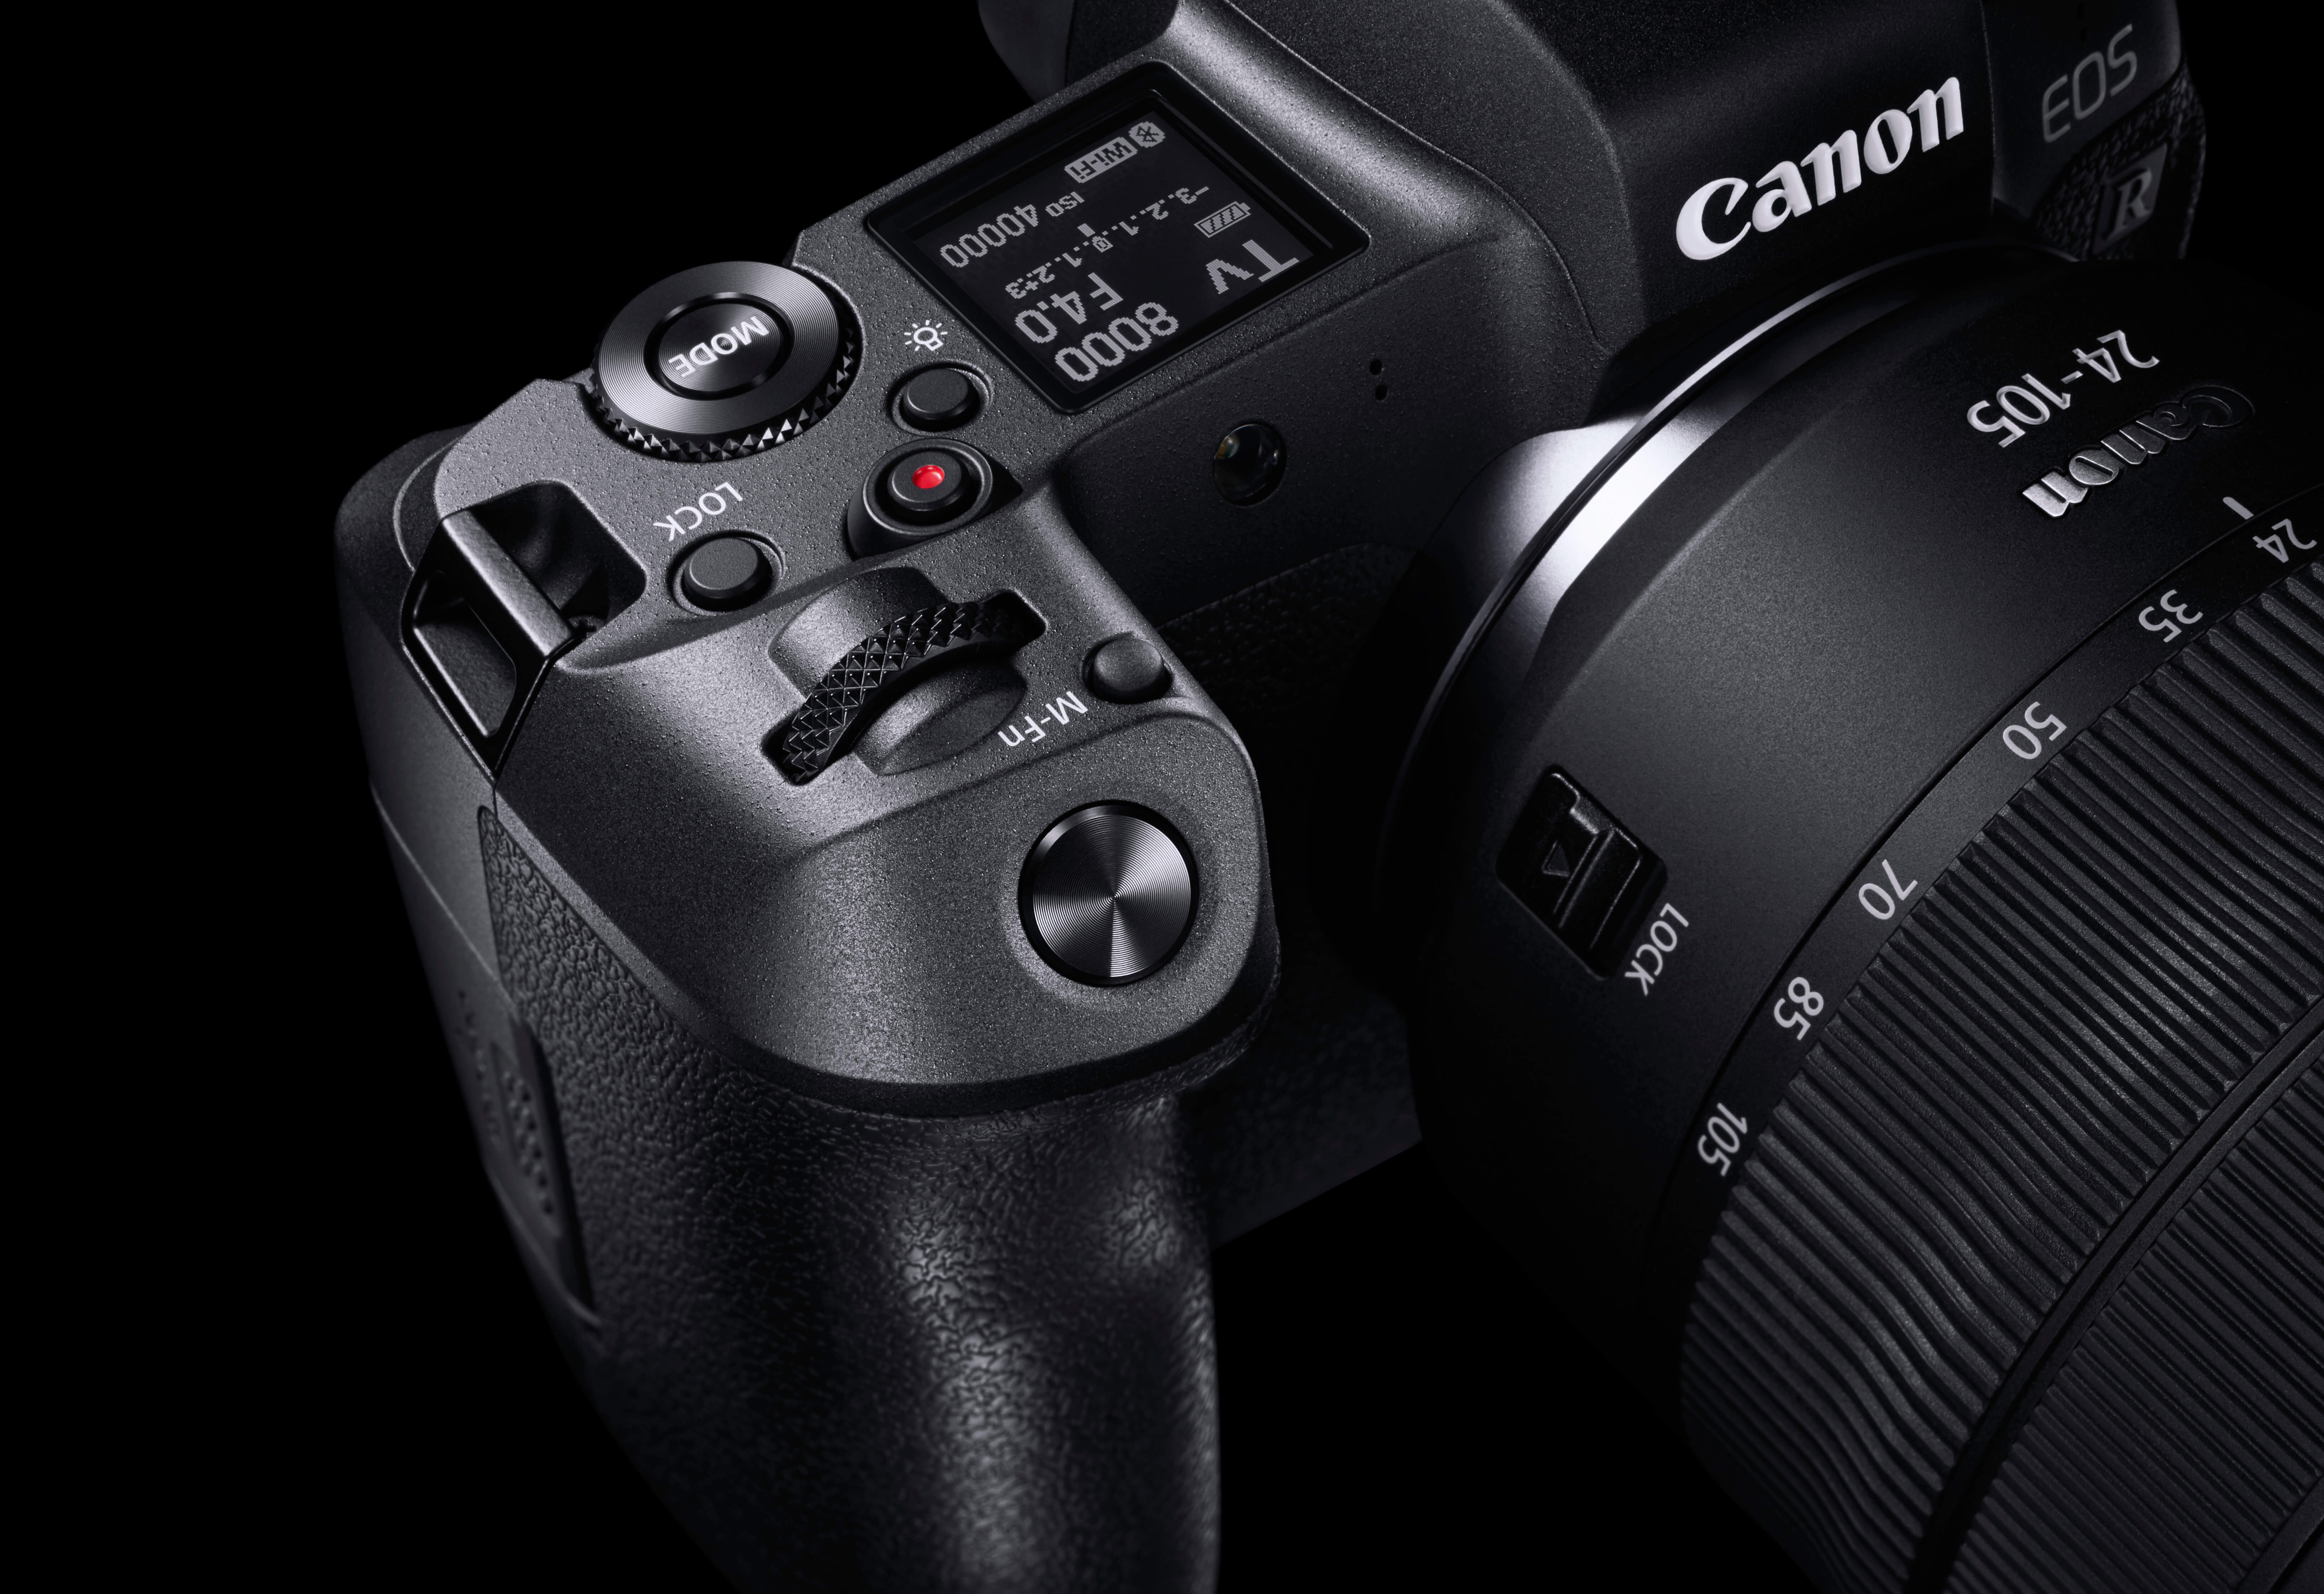 Image of the EOS R with RF lens